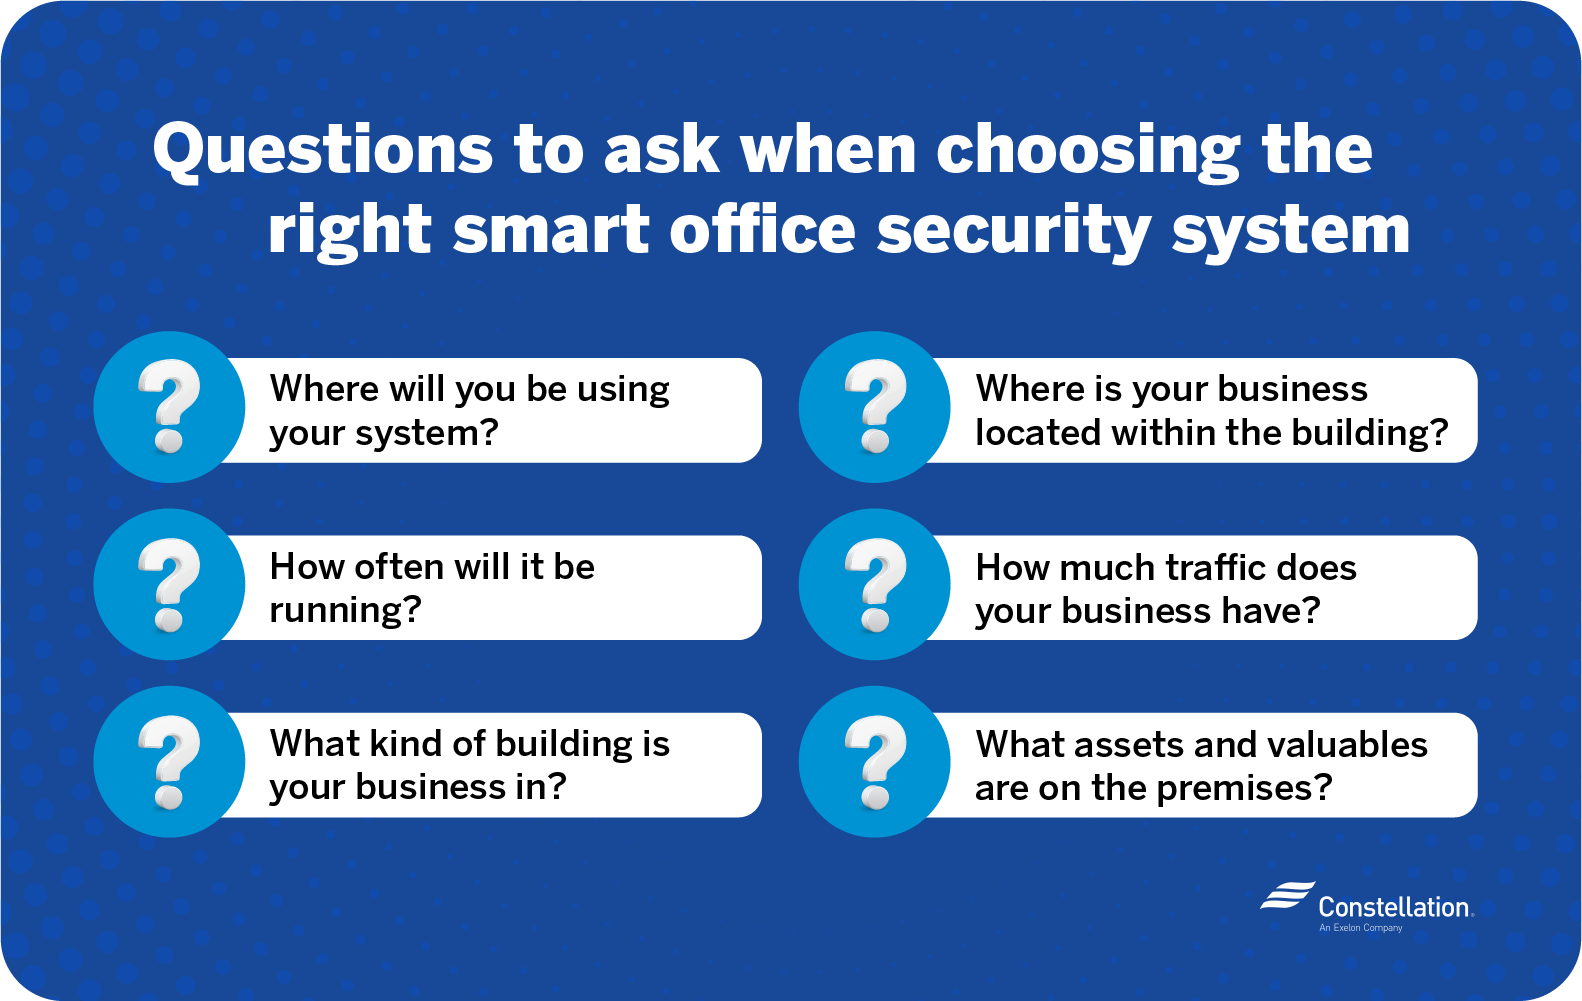 Questions to ask when choosing the right smart office security system